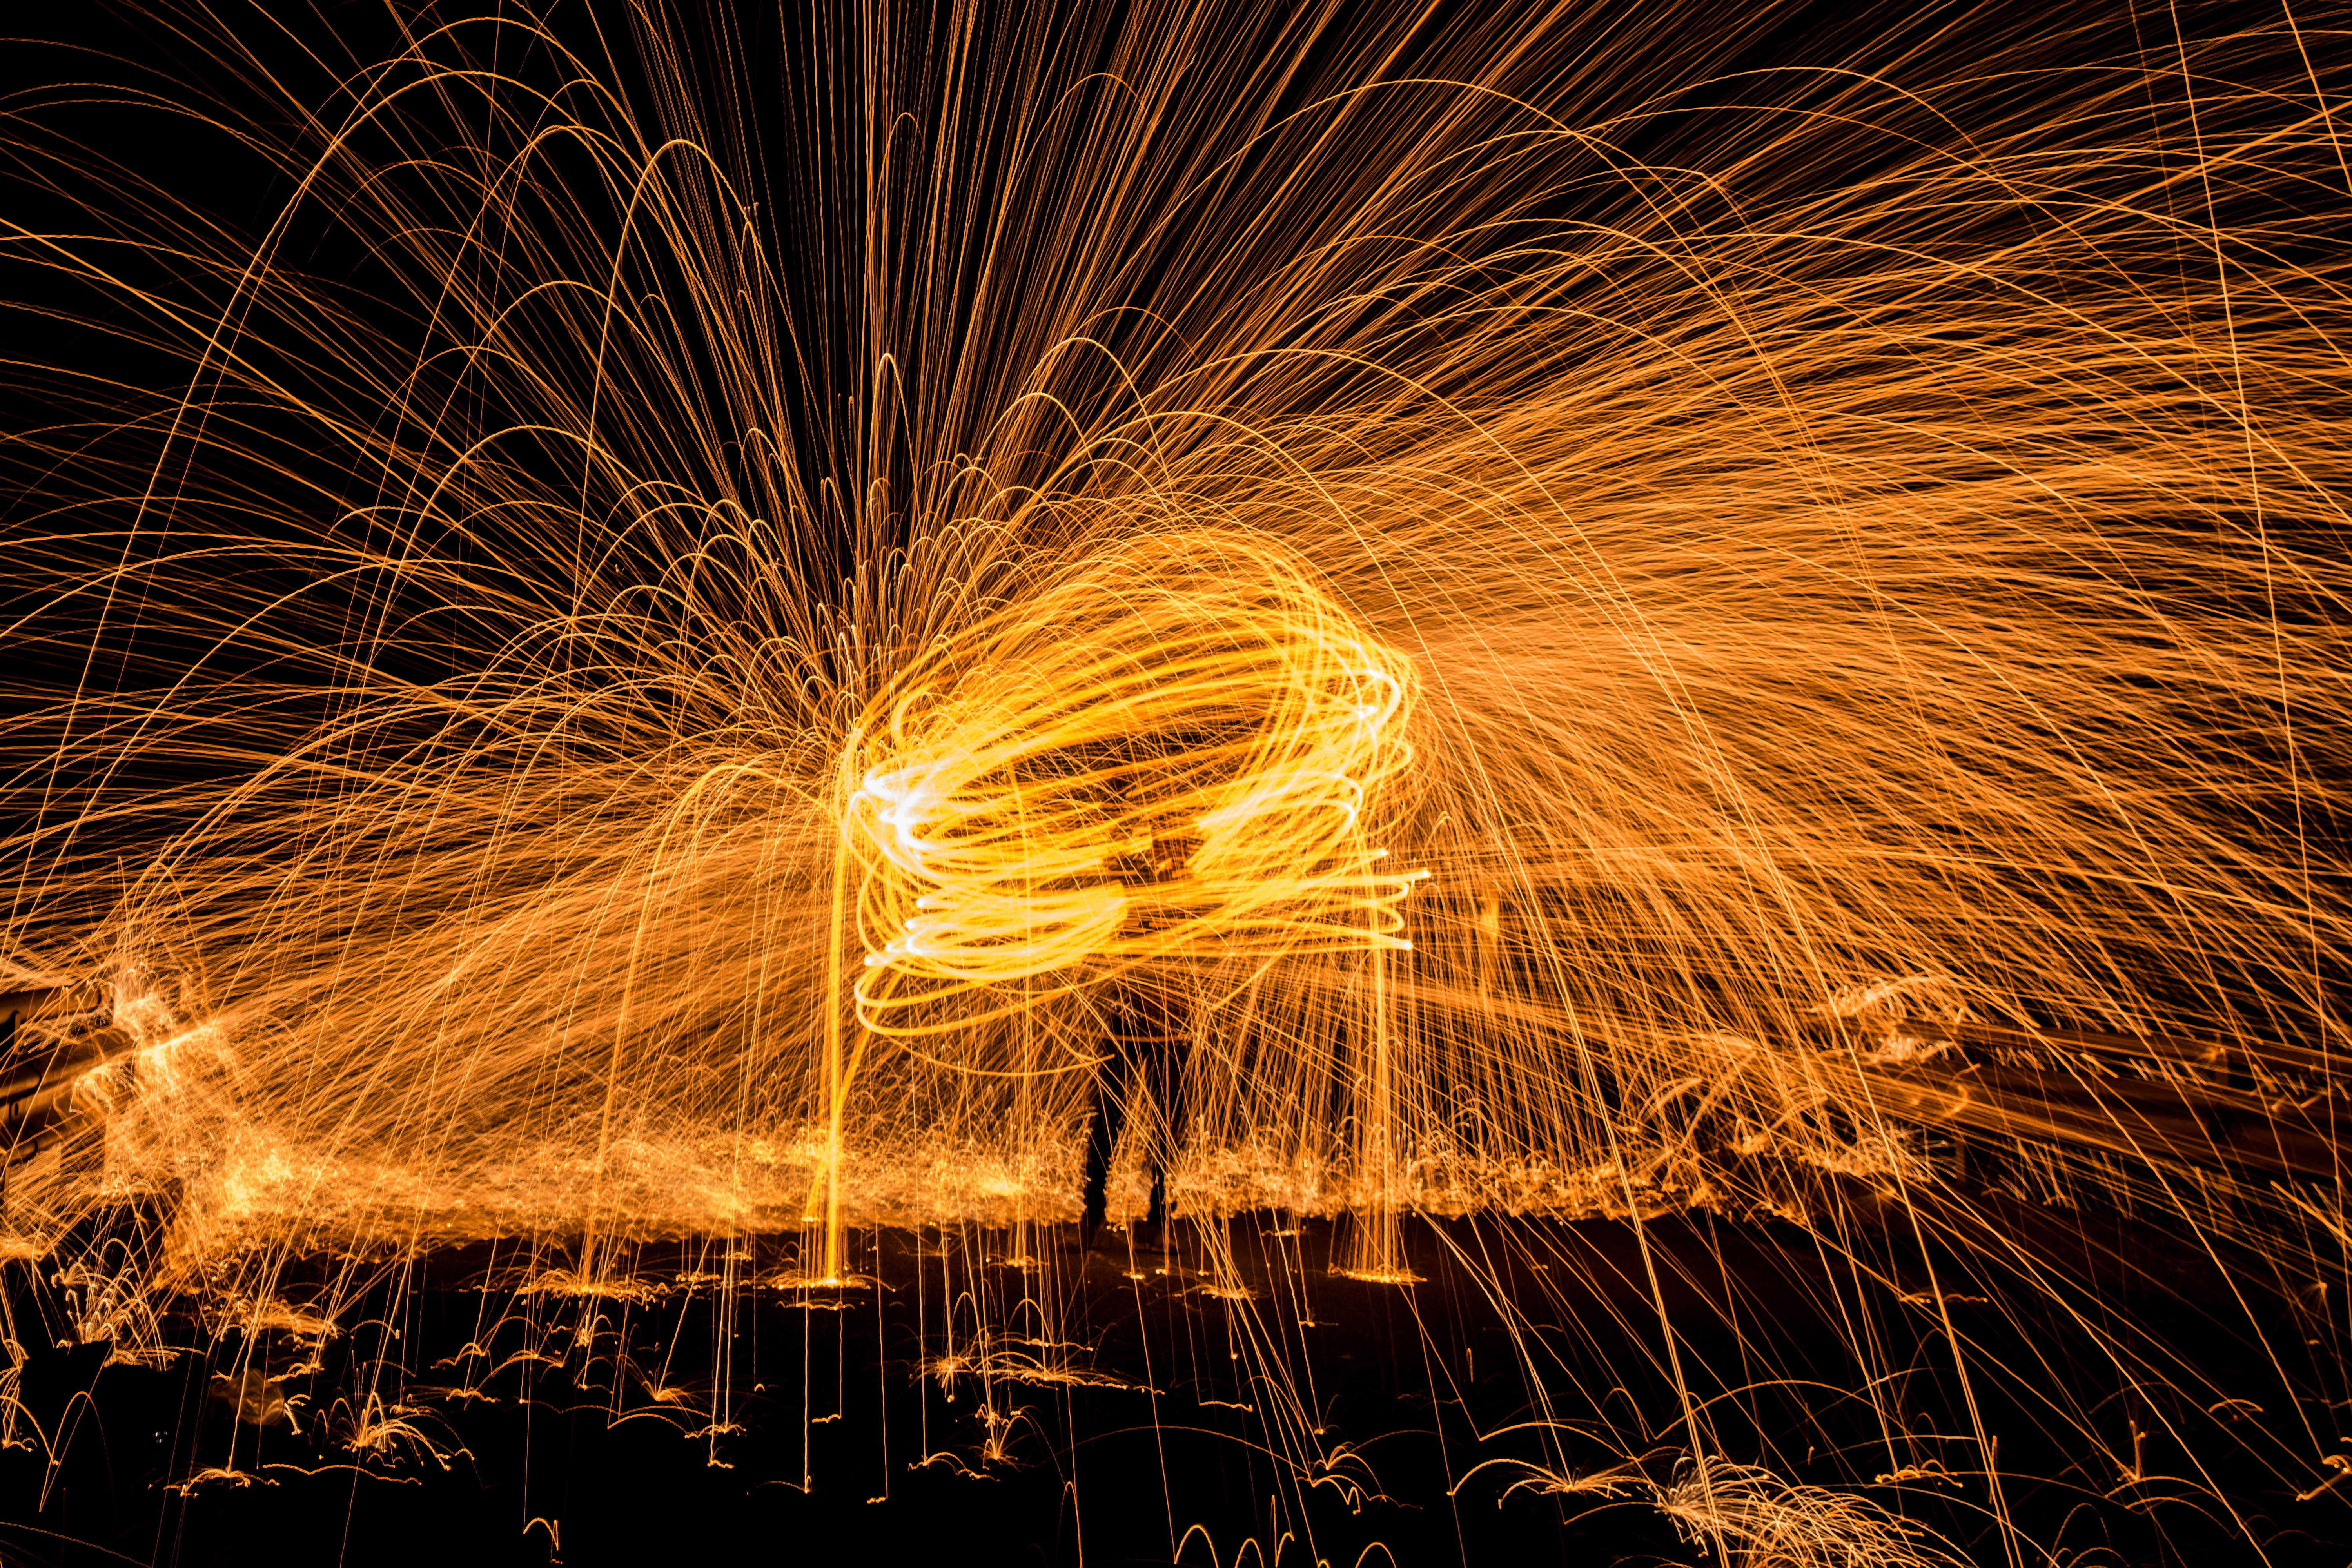 steel wool photography on man standing on black surface